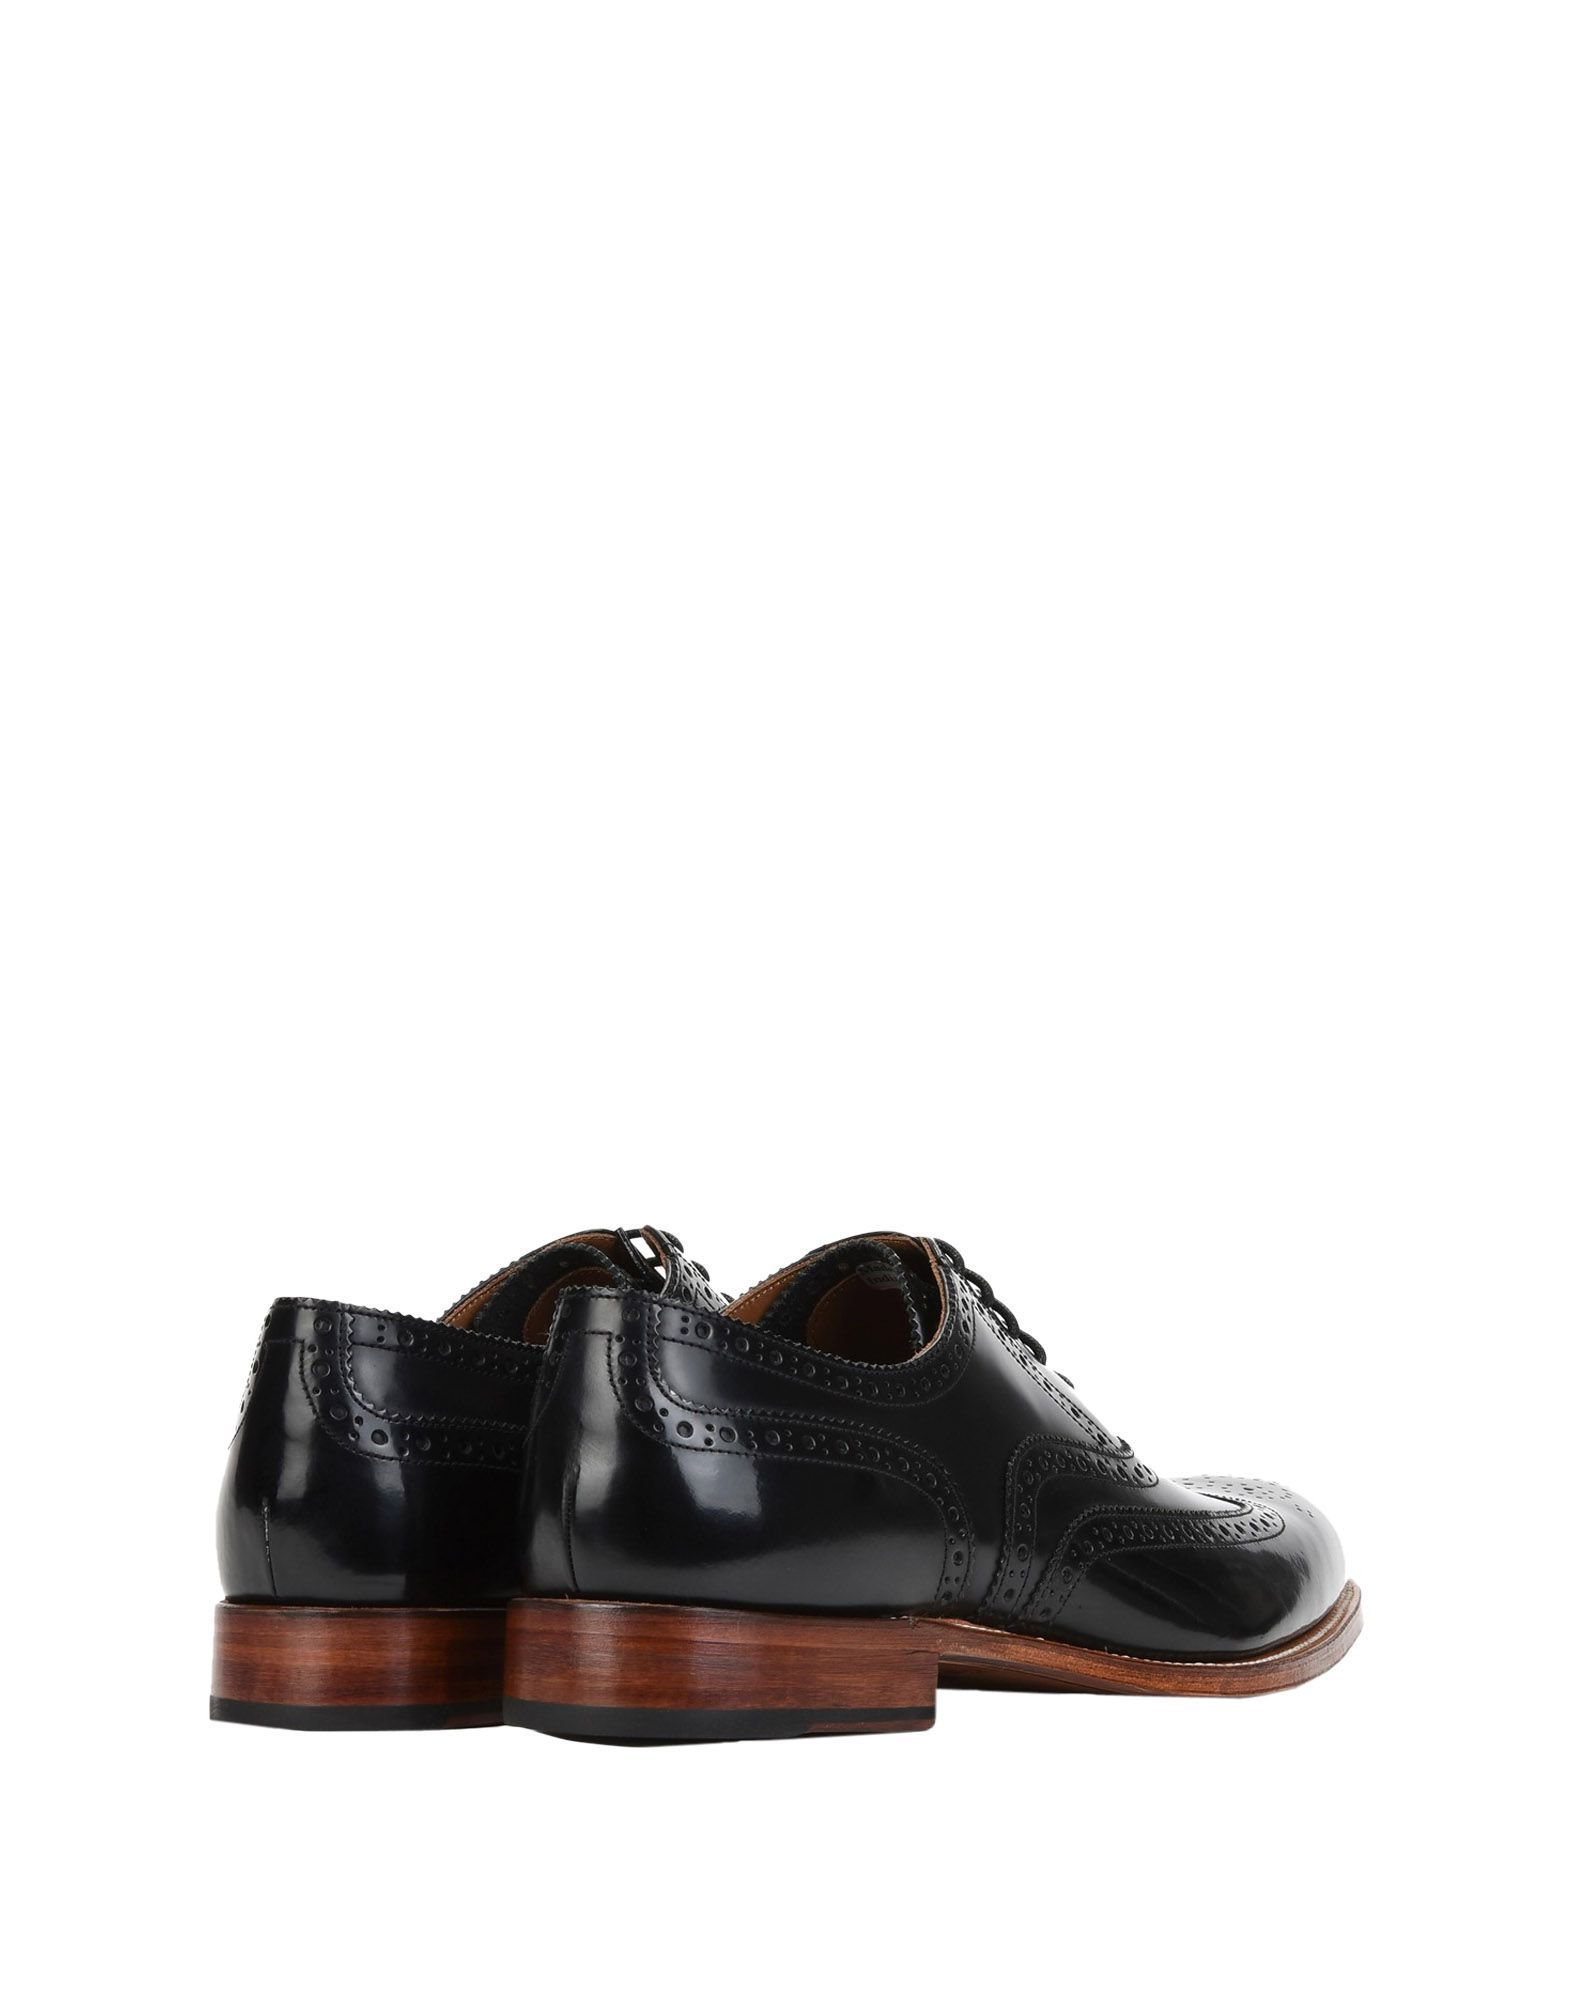 Grenson Black Leather Lace Up Shoes